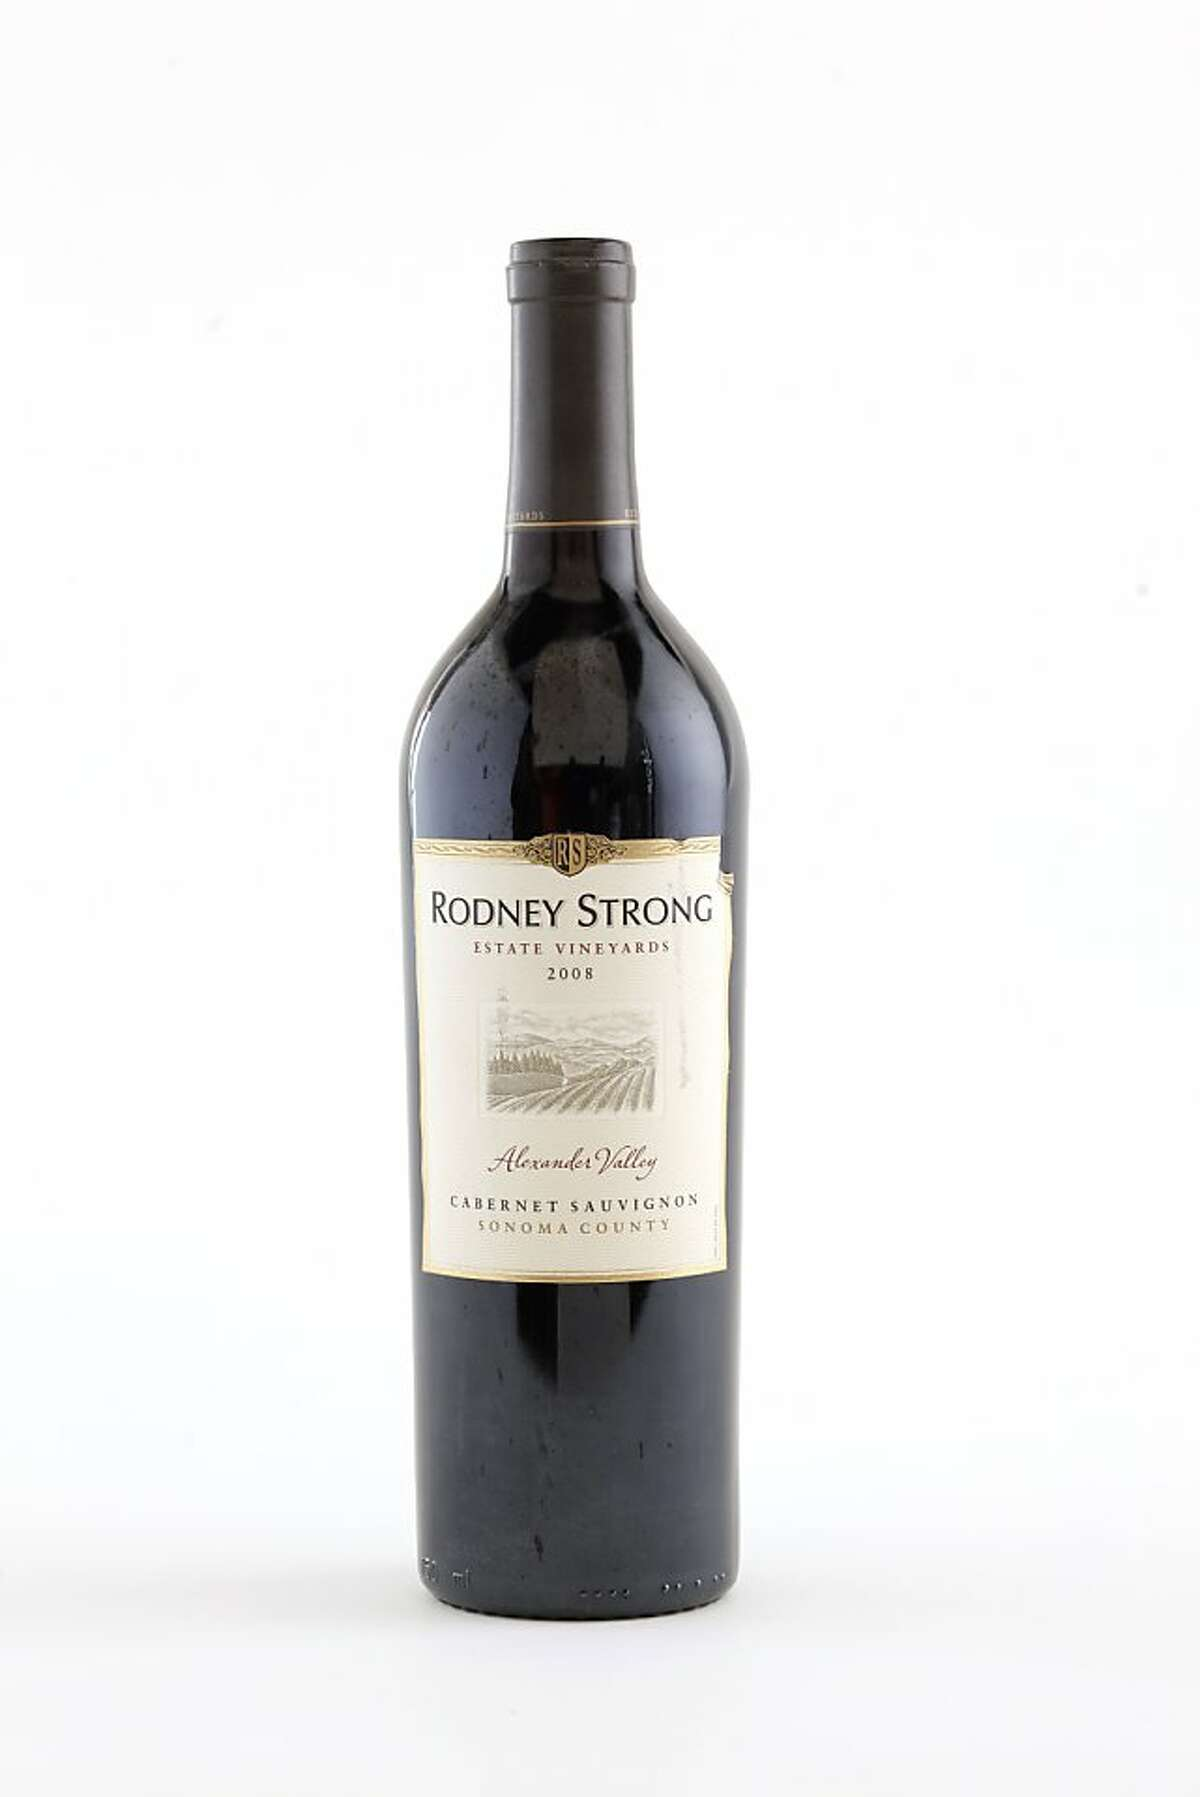 2008 Rodney Strong Cabernet as seen in San Francisco, California, on Wednesday, September 7, 2011. Ran on: 09-18-2011 Photo caption Dummy text goes here. Dummy text goes here. Dummy text goes here. Dummy text goes here. Dummy text goes here. Dummy text goes here. Dummy text goes here. Dummy text goes here.###Photo: GRID18_rodneyalex_ph1315267200SFC###Live Caption:2008 Rodney Strong Cabernet as seen in San Francisco, California, on Wednesday, September 7, 2011.###Caption History:2008 Rodney Strong Cabernet as seen in San Francisco, California, on Wednesday, September 7, 2011.###Notes:###Special Instructions:MANDATORY CREDIT FOR PHOTOG AND SF CHRONICLE-NO SALES-MAGS OUT-INTERNET__OUT-TV OUT